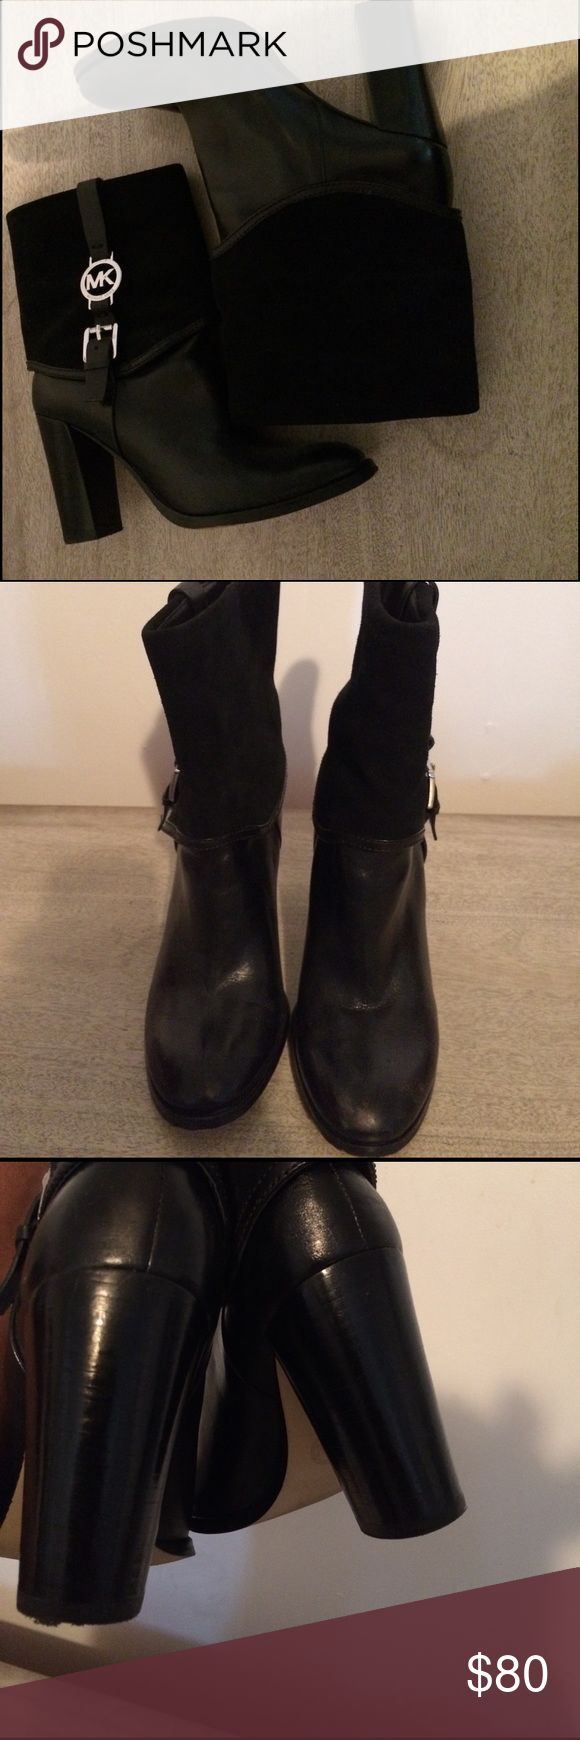 Mk boots Good condition little scuff on right foot in the front not extremely noticeable heels are still in tact MICHAEL Michael Kors Shoes Heeled Boots